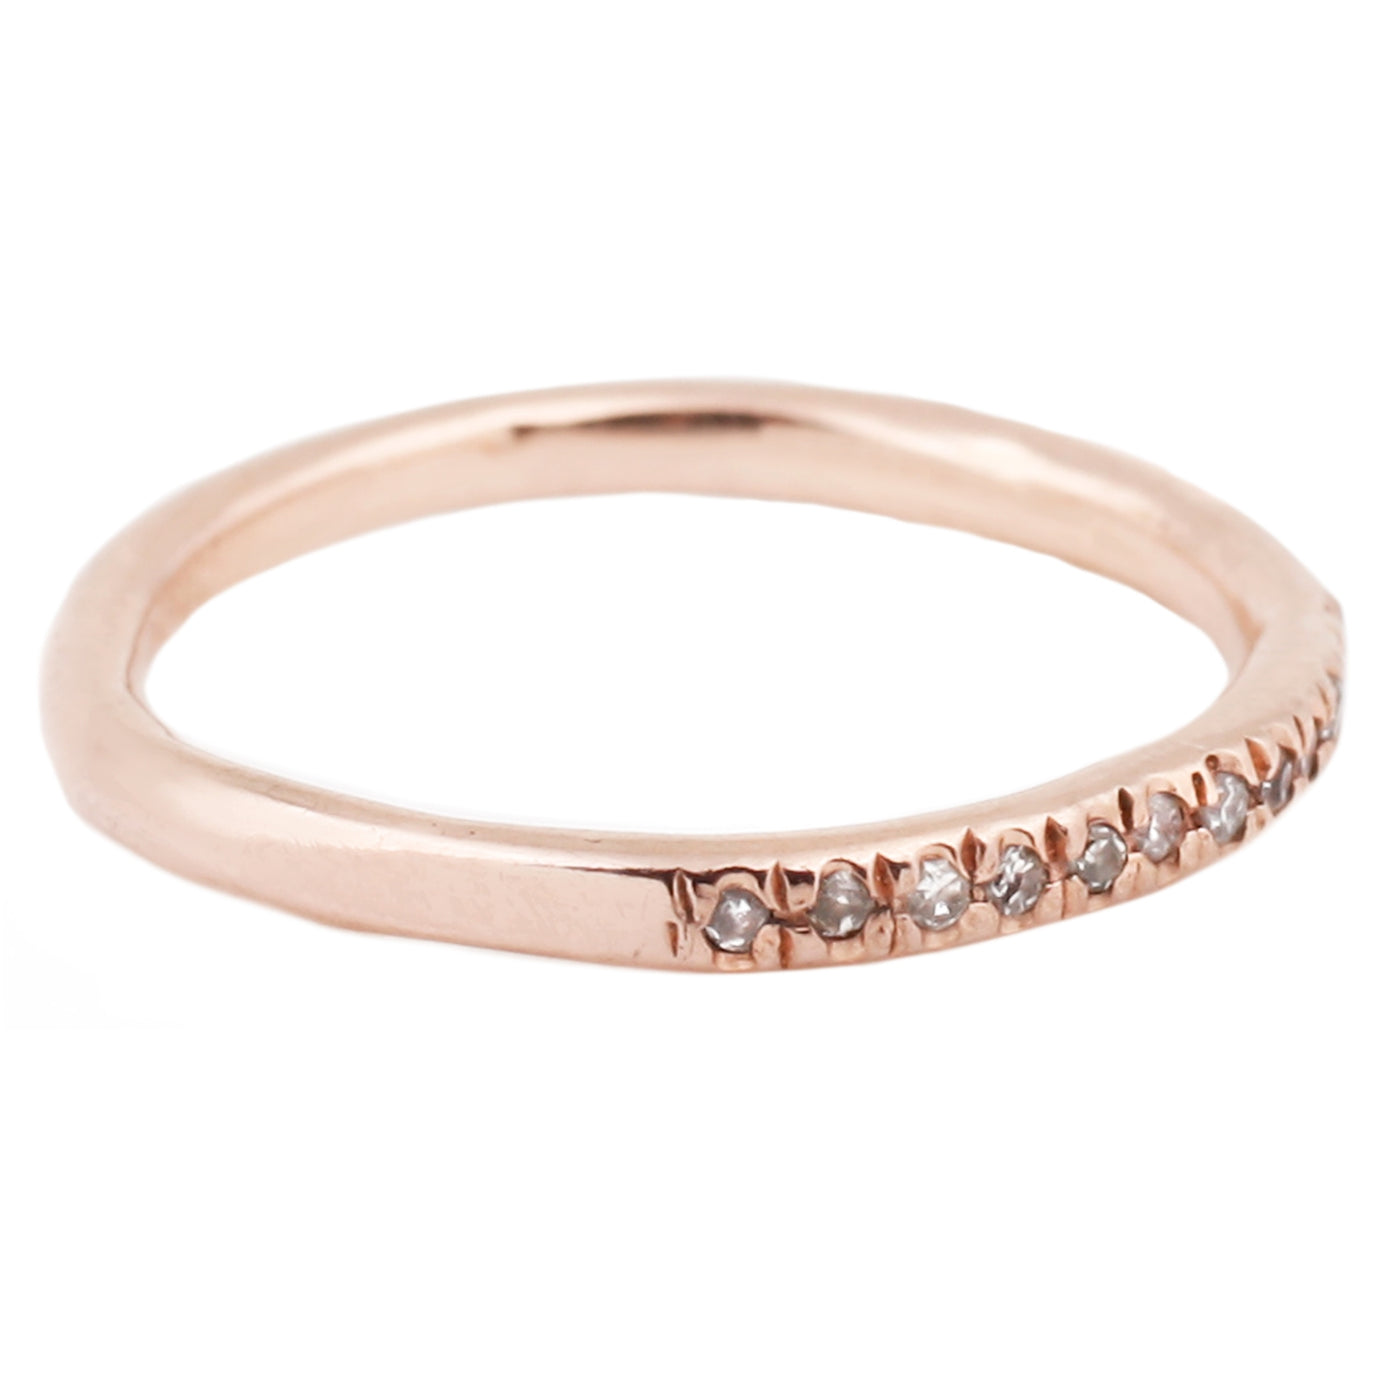 Lauren Wolf Rose Gold Half Eternity Ring Pave White Diamonds